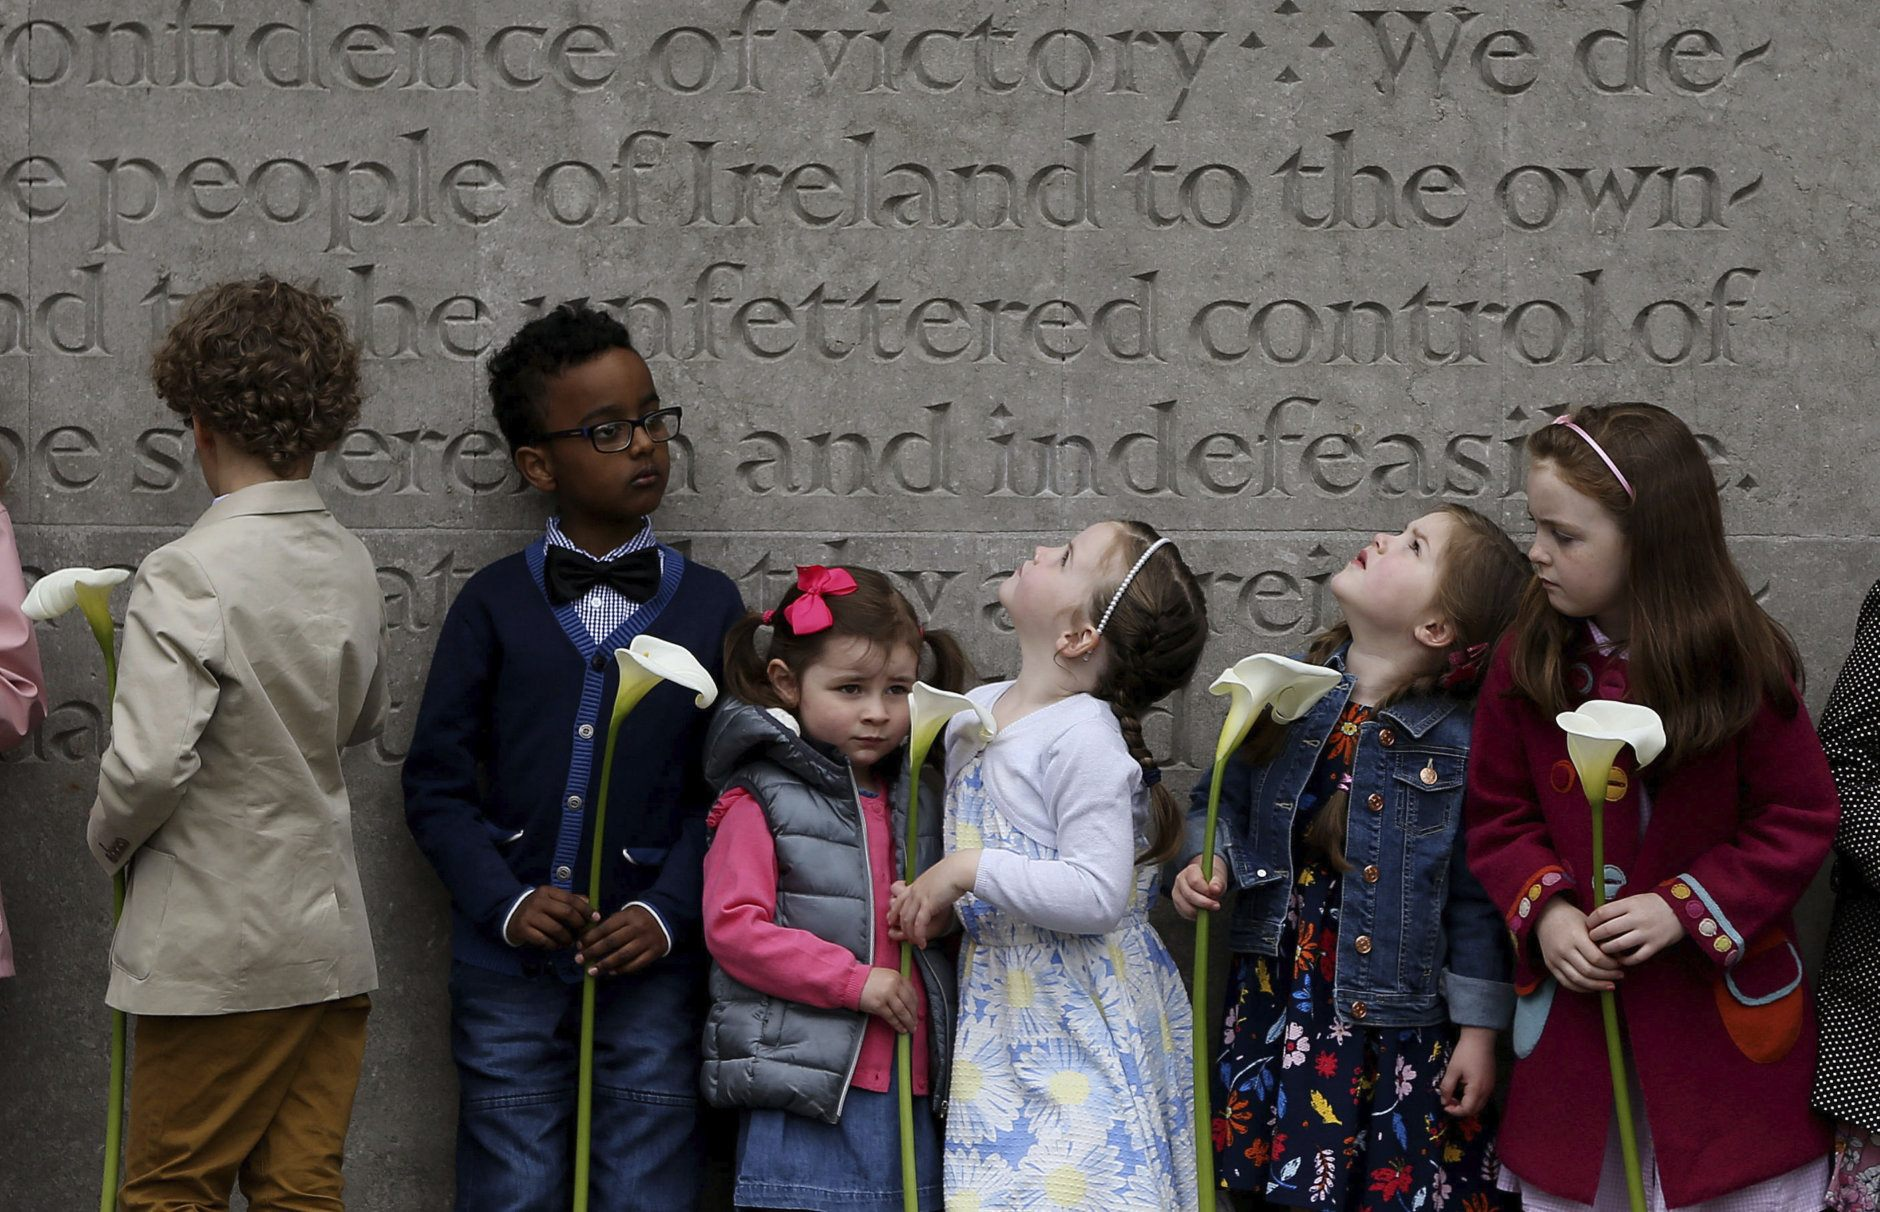 Children wait to place an Easter Lily, a symbol of the 1916 Easter Rising, at Arbour Hill cemetery in Dublin, Ireland, during the annual Fianna Fail 1916 Easter Rising commemoration, Sunday April 22, 2018. (Brian Lawless/PA via AP)